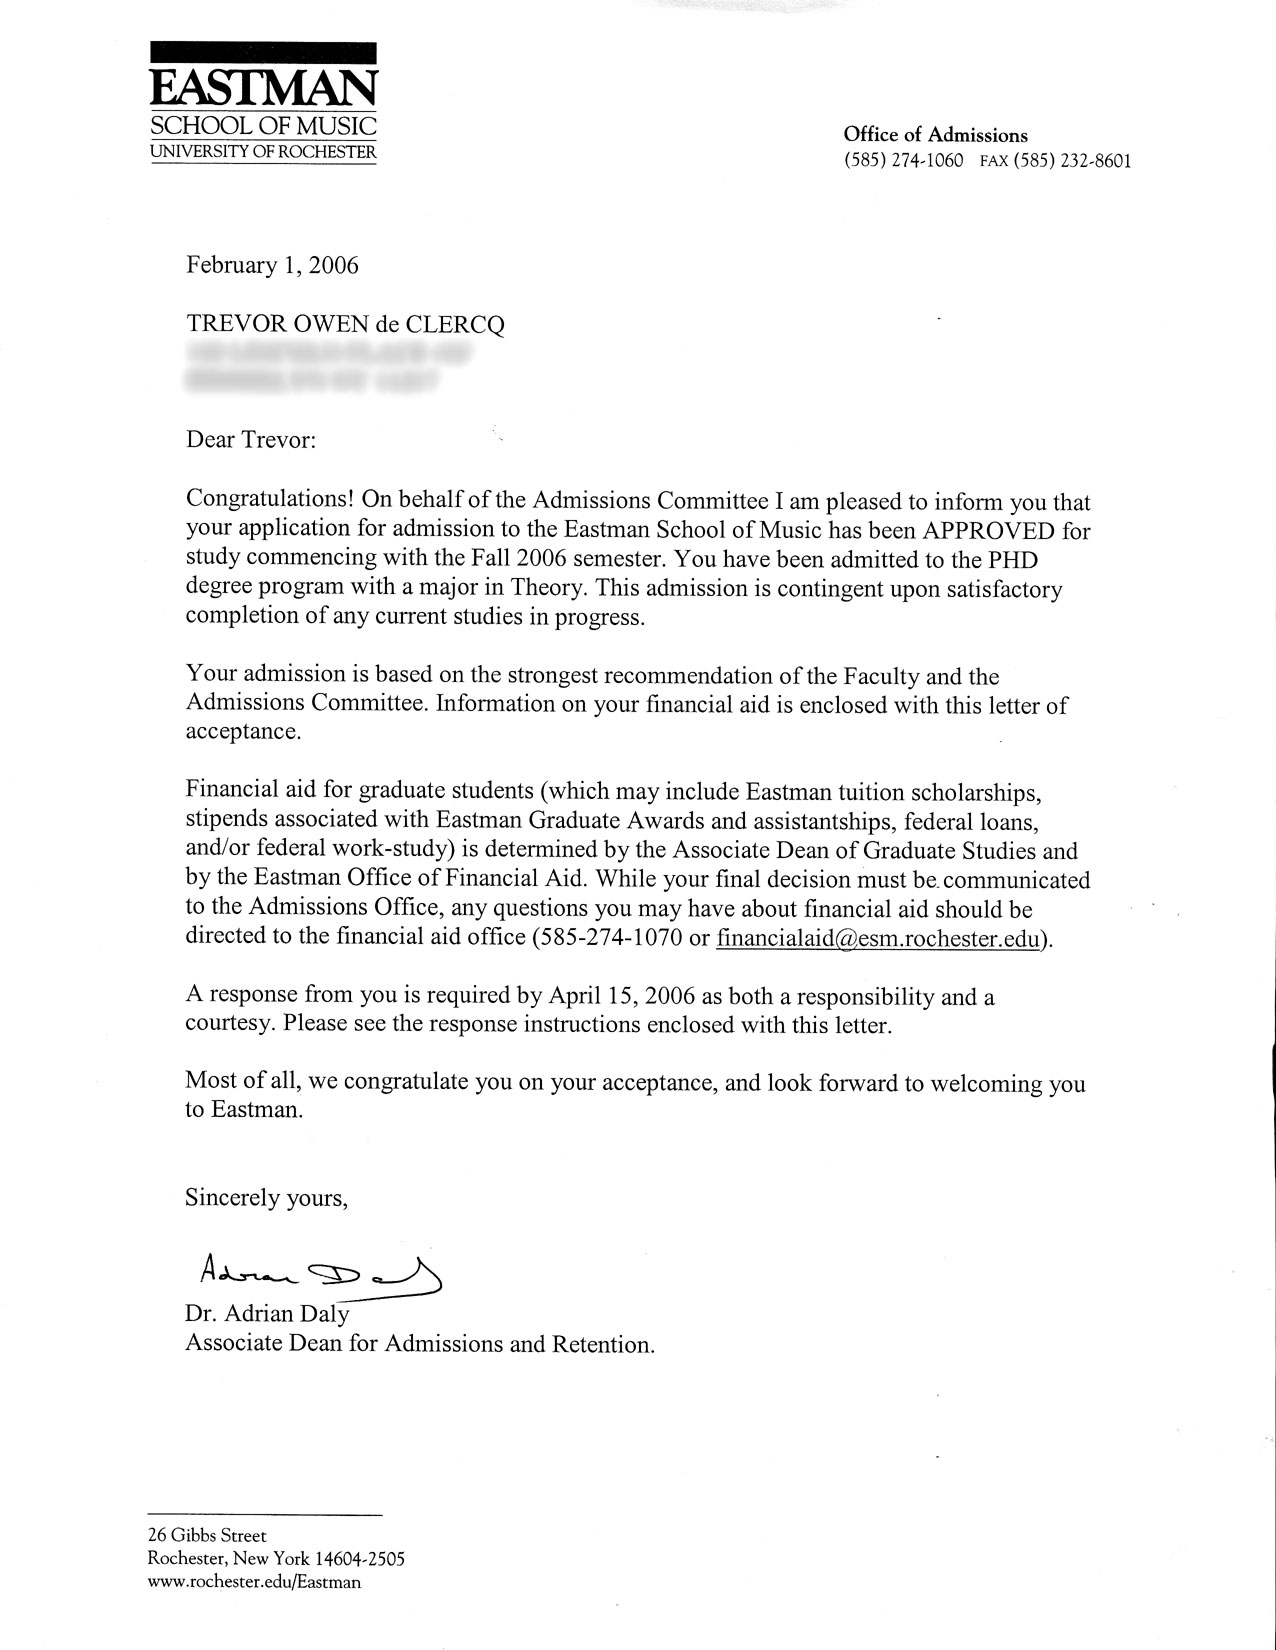 phd application trevor de clercq eastman acceptance letter